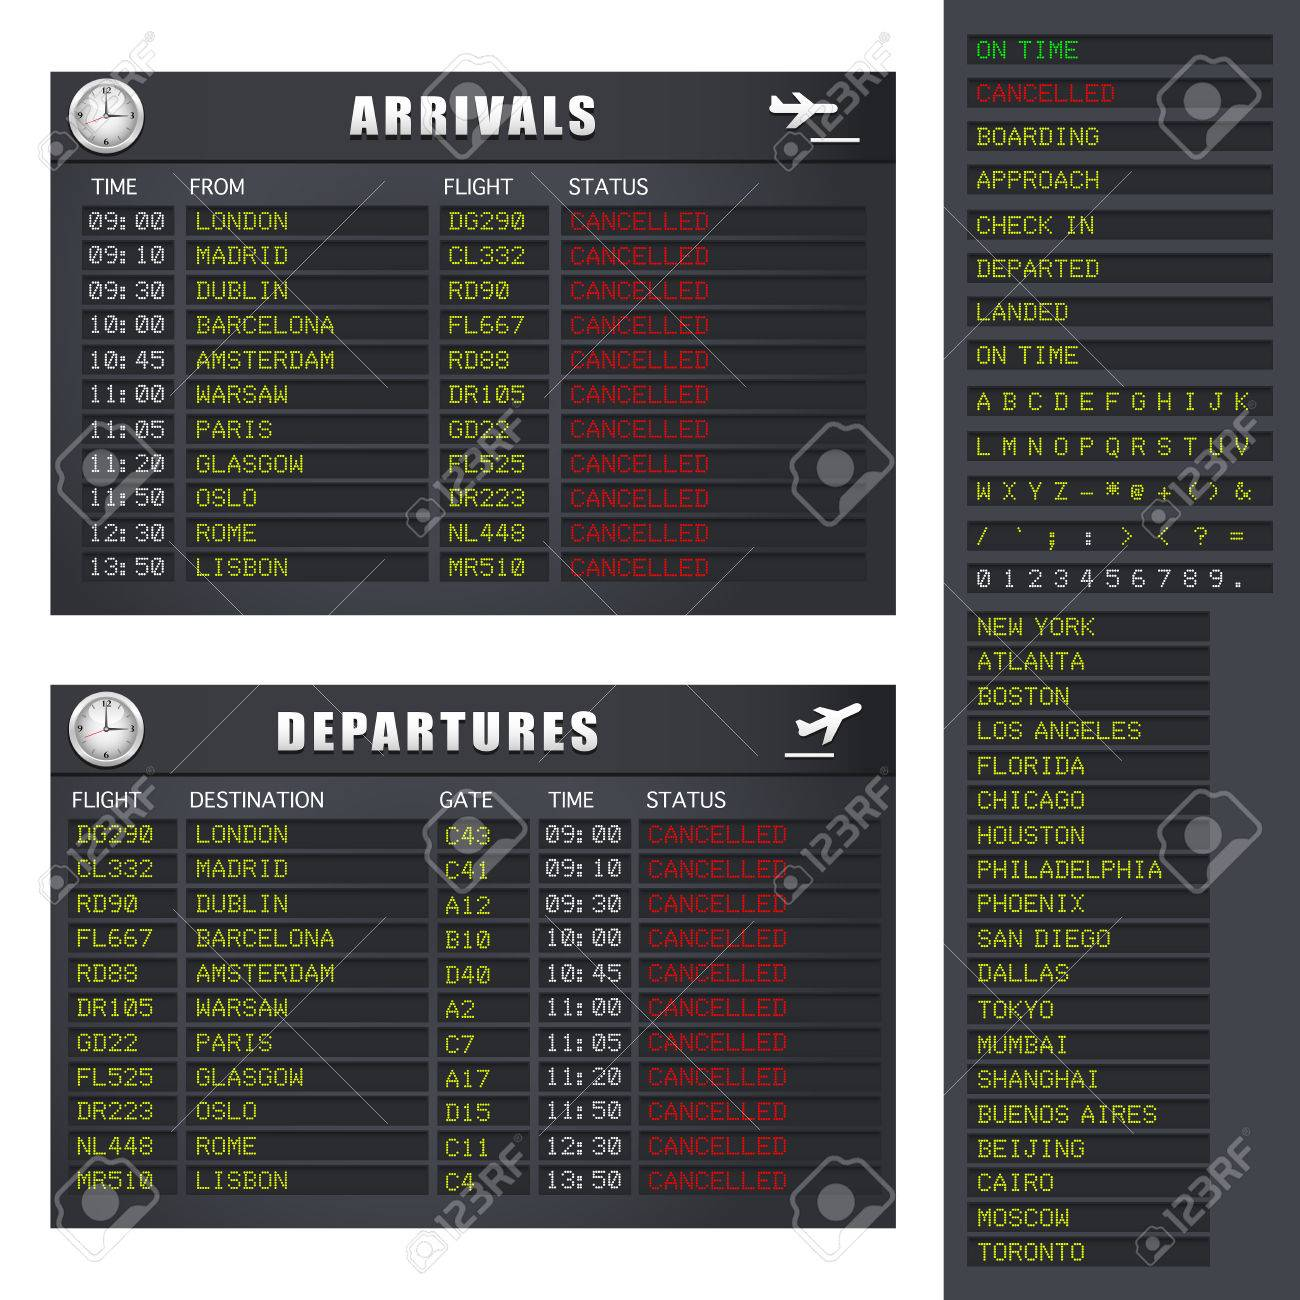 Airport flight information board showing cancelled flights. - 6801866